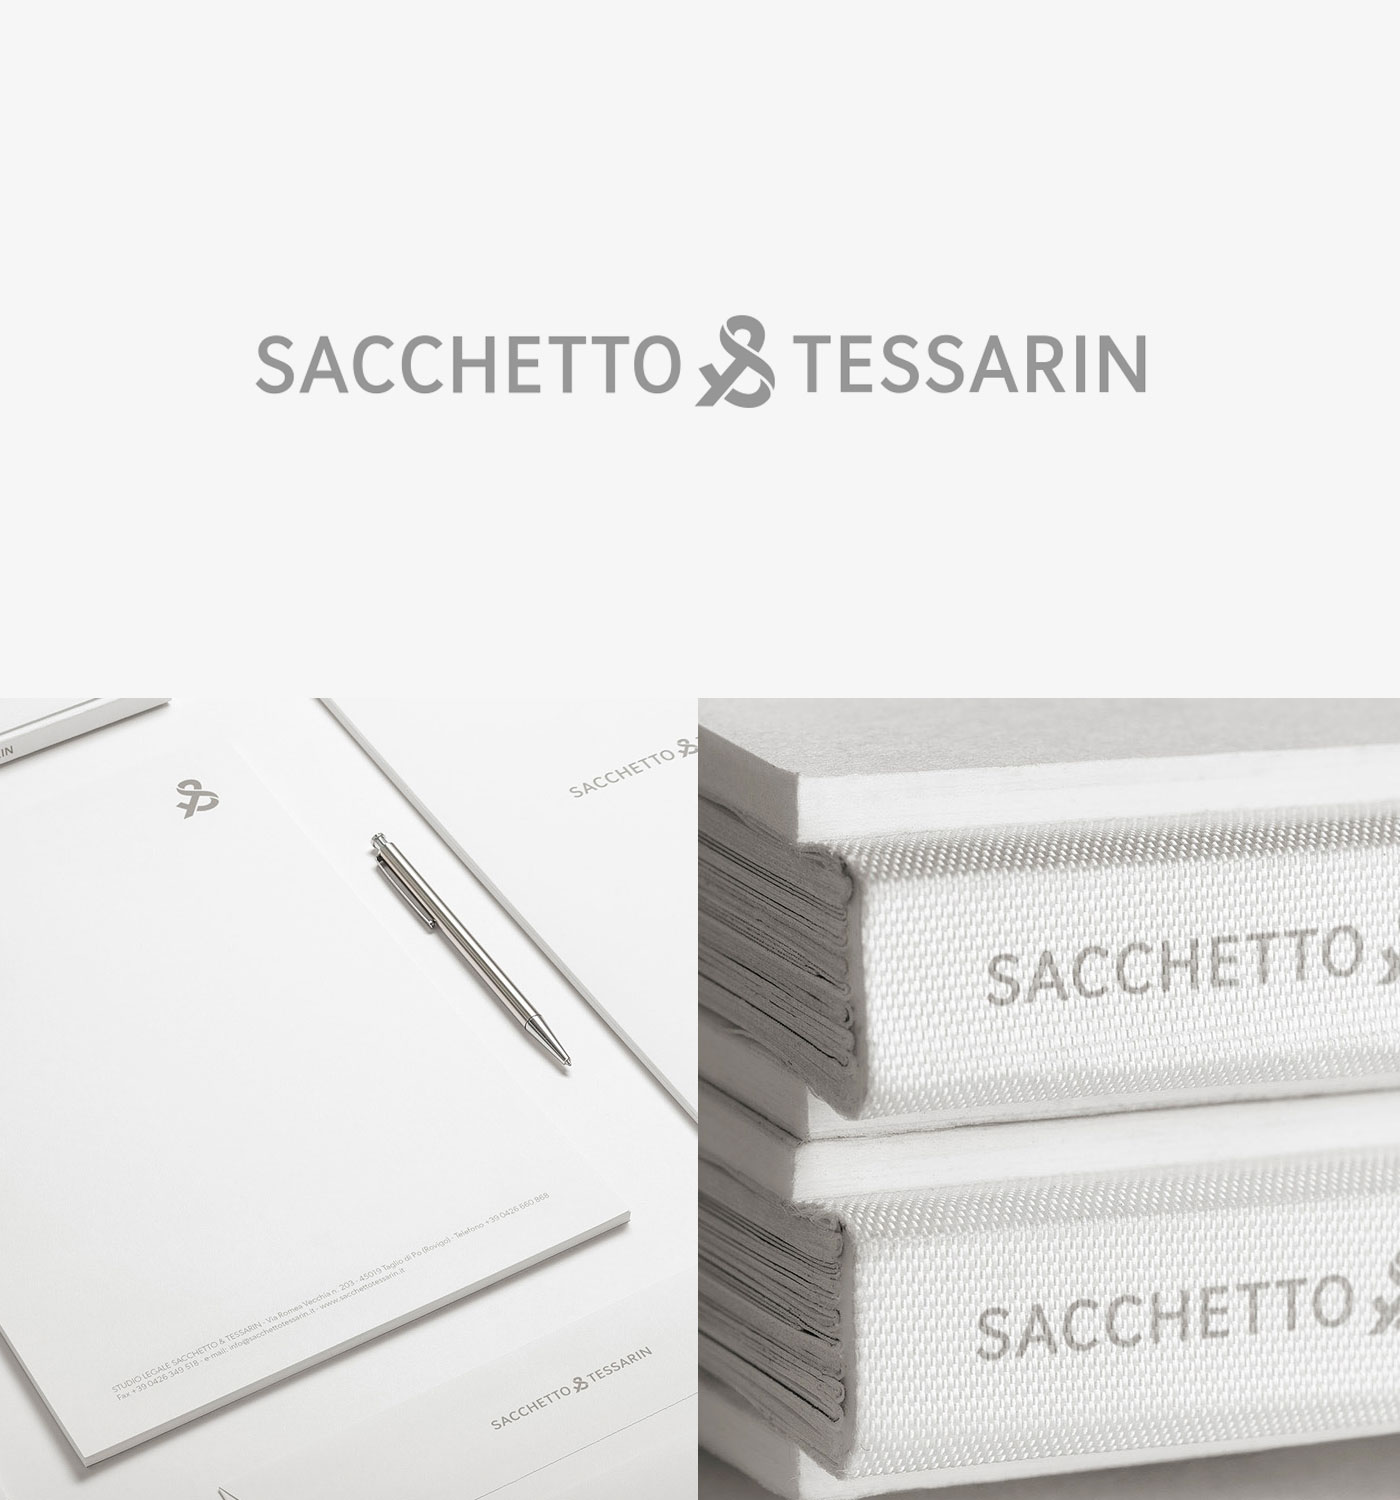 Sacchetto & Tessarin Designed by Concreate Studio